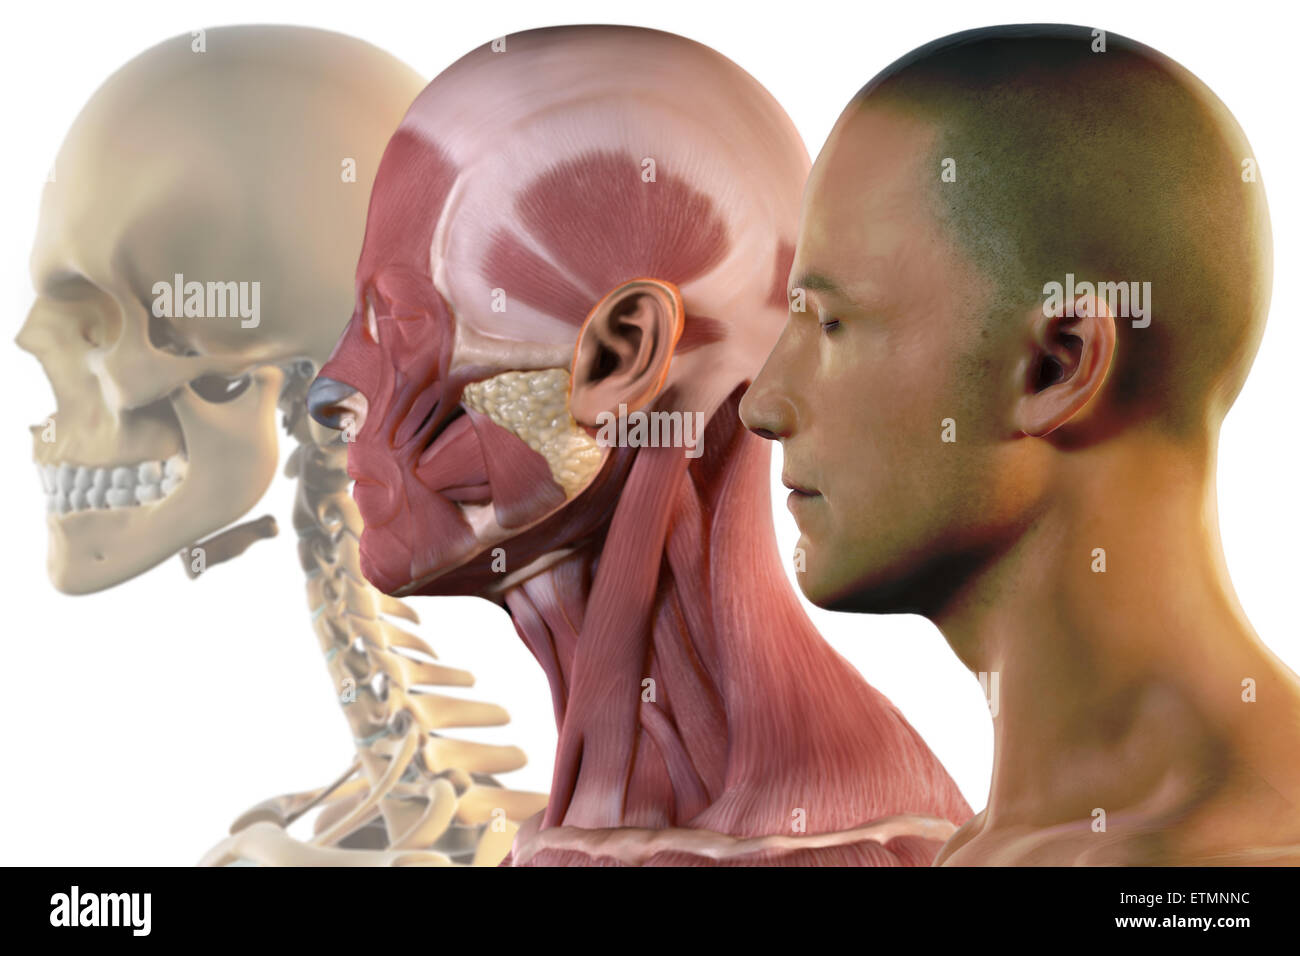 Illustration showing the surface anatomy, musculature and skeletal ...